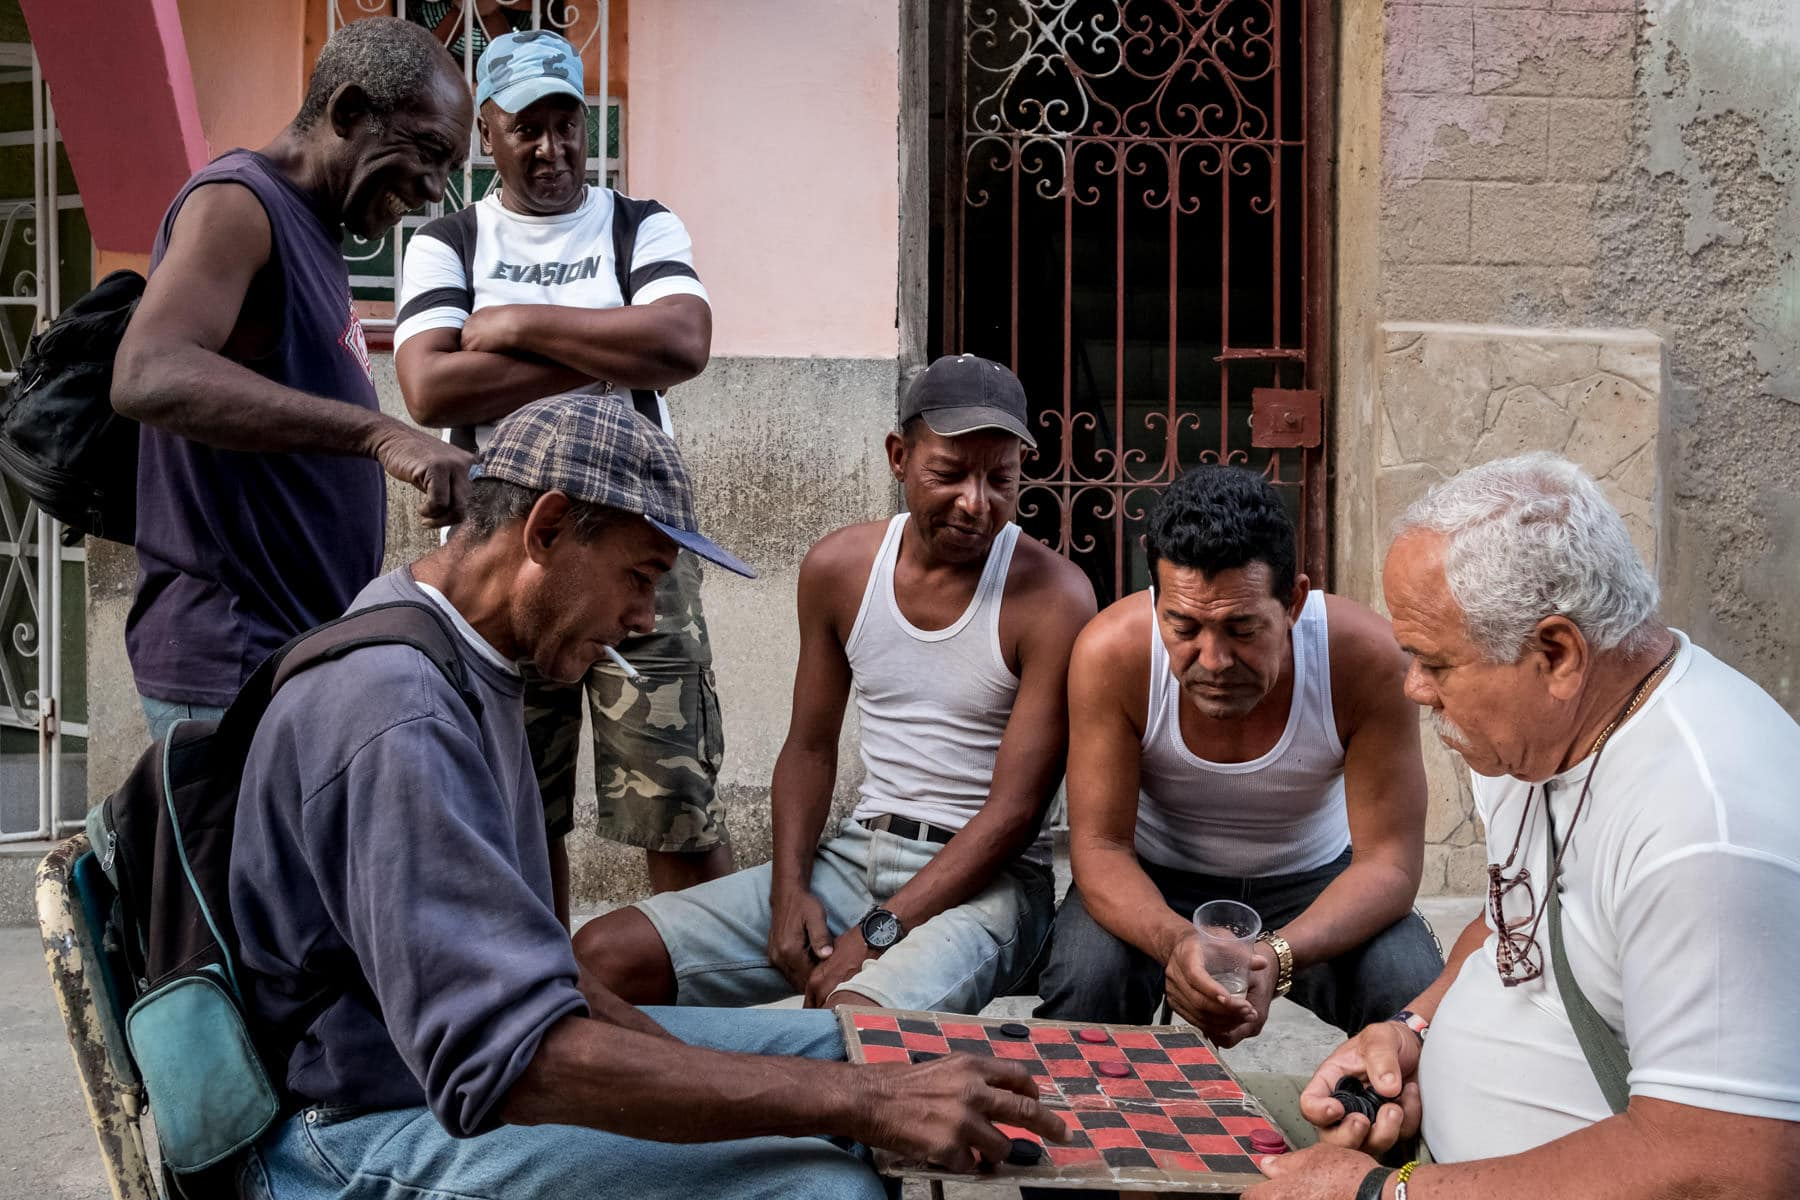 Cuban men playing checkers on the street in Havana